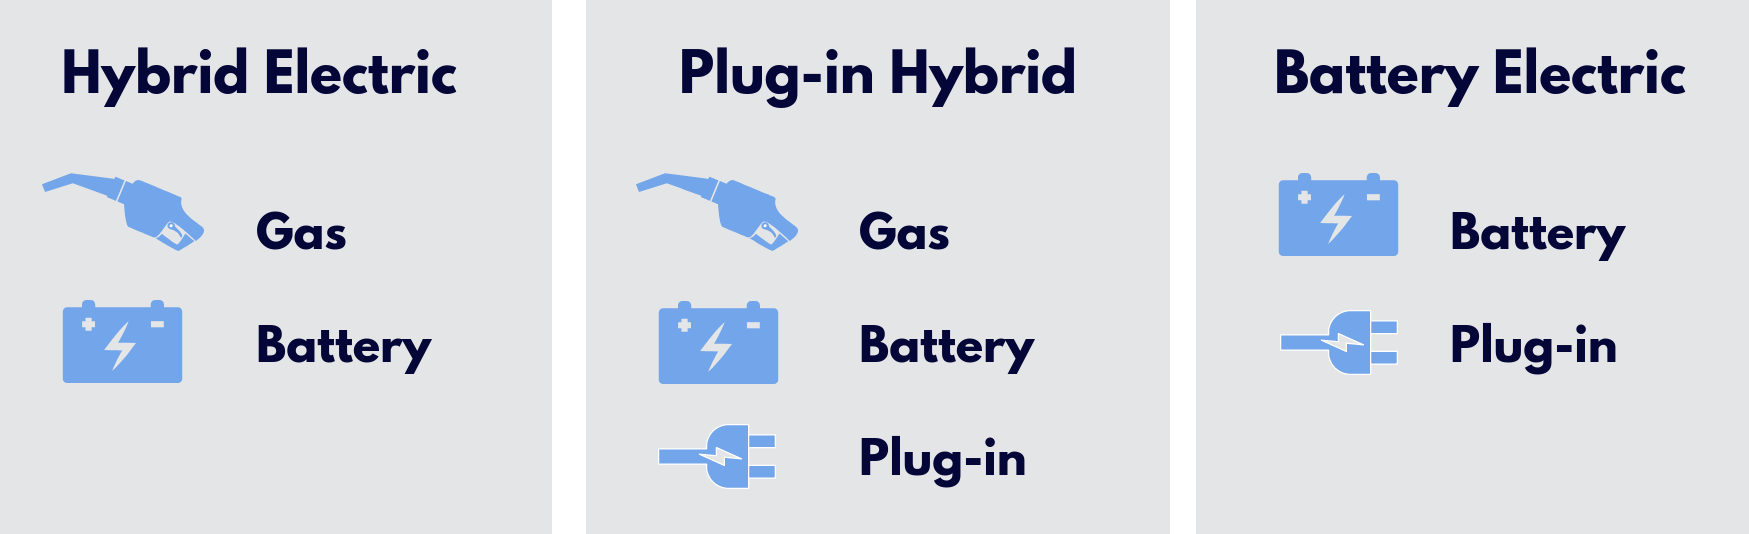 Vehicle types: hybrid electric, plug-in hybrid, battery electric